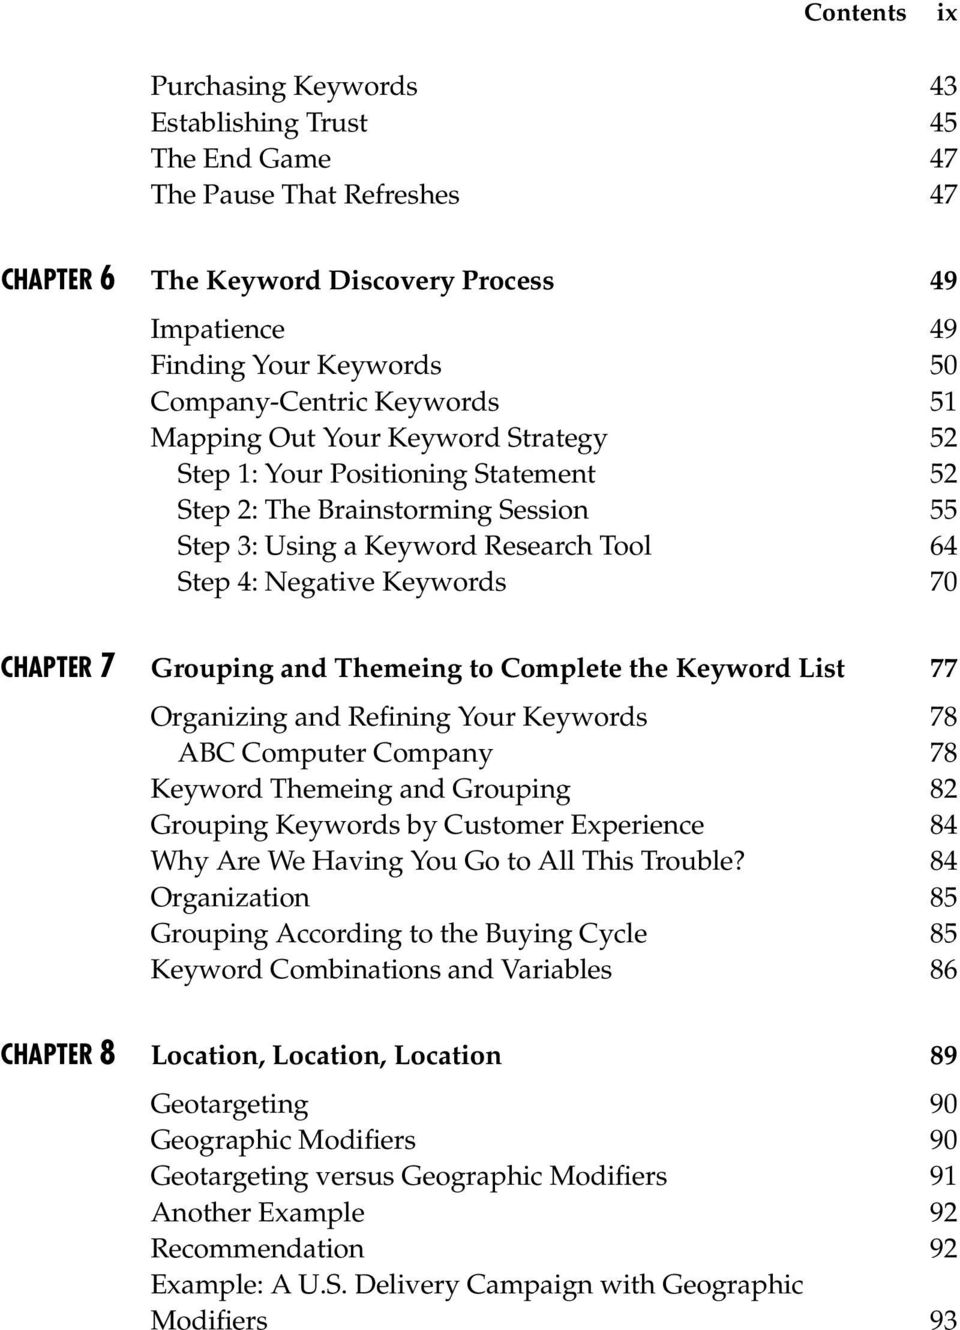 Grouping and Themeing to Complete the Keyword List 77 Organizing and Refining Your Keywords 78 ABC Computer Company 78 Keyword Themeing and Grouping 82 Grouping Keywords by Customer Experience 84 Why